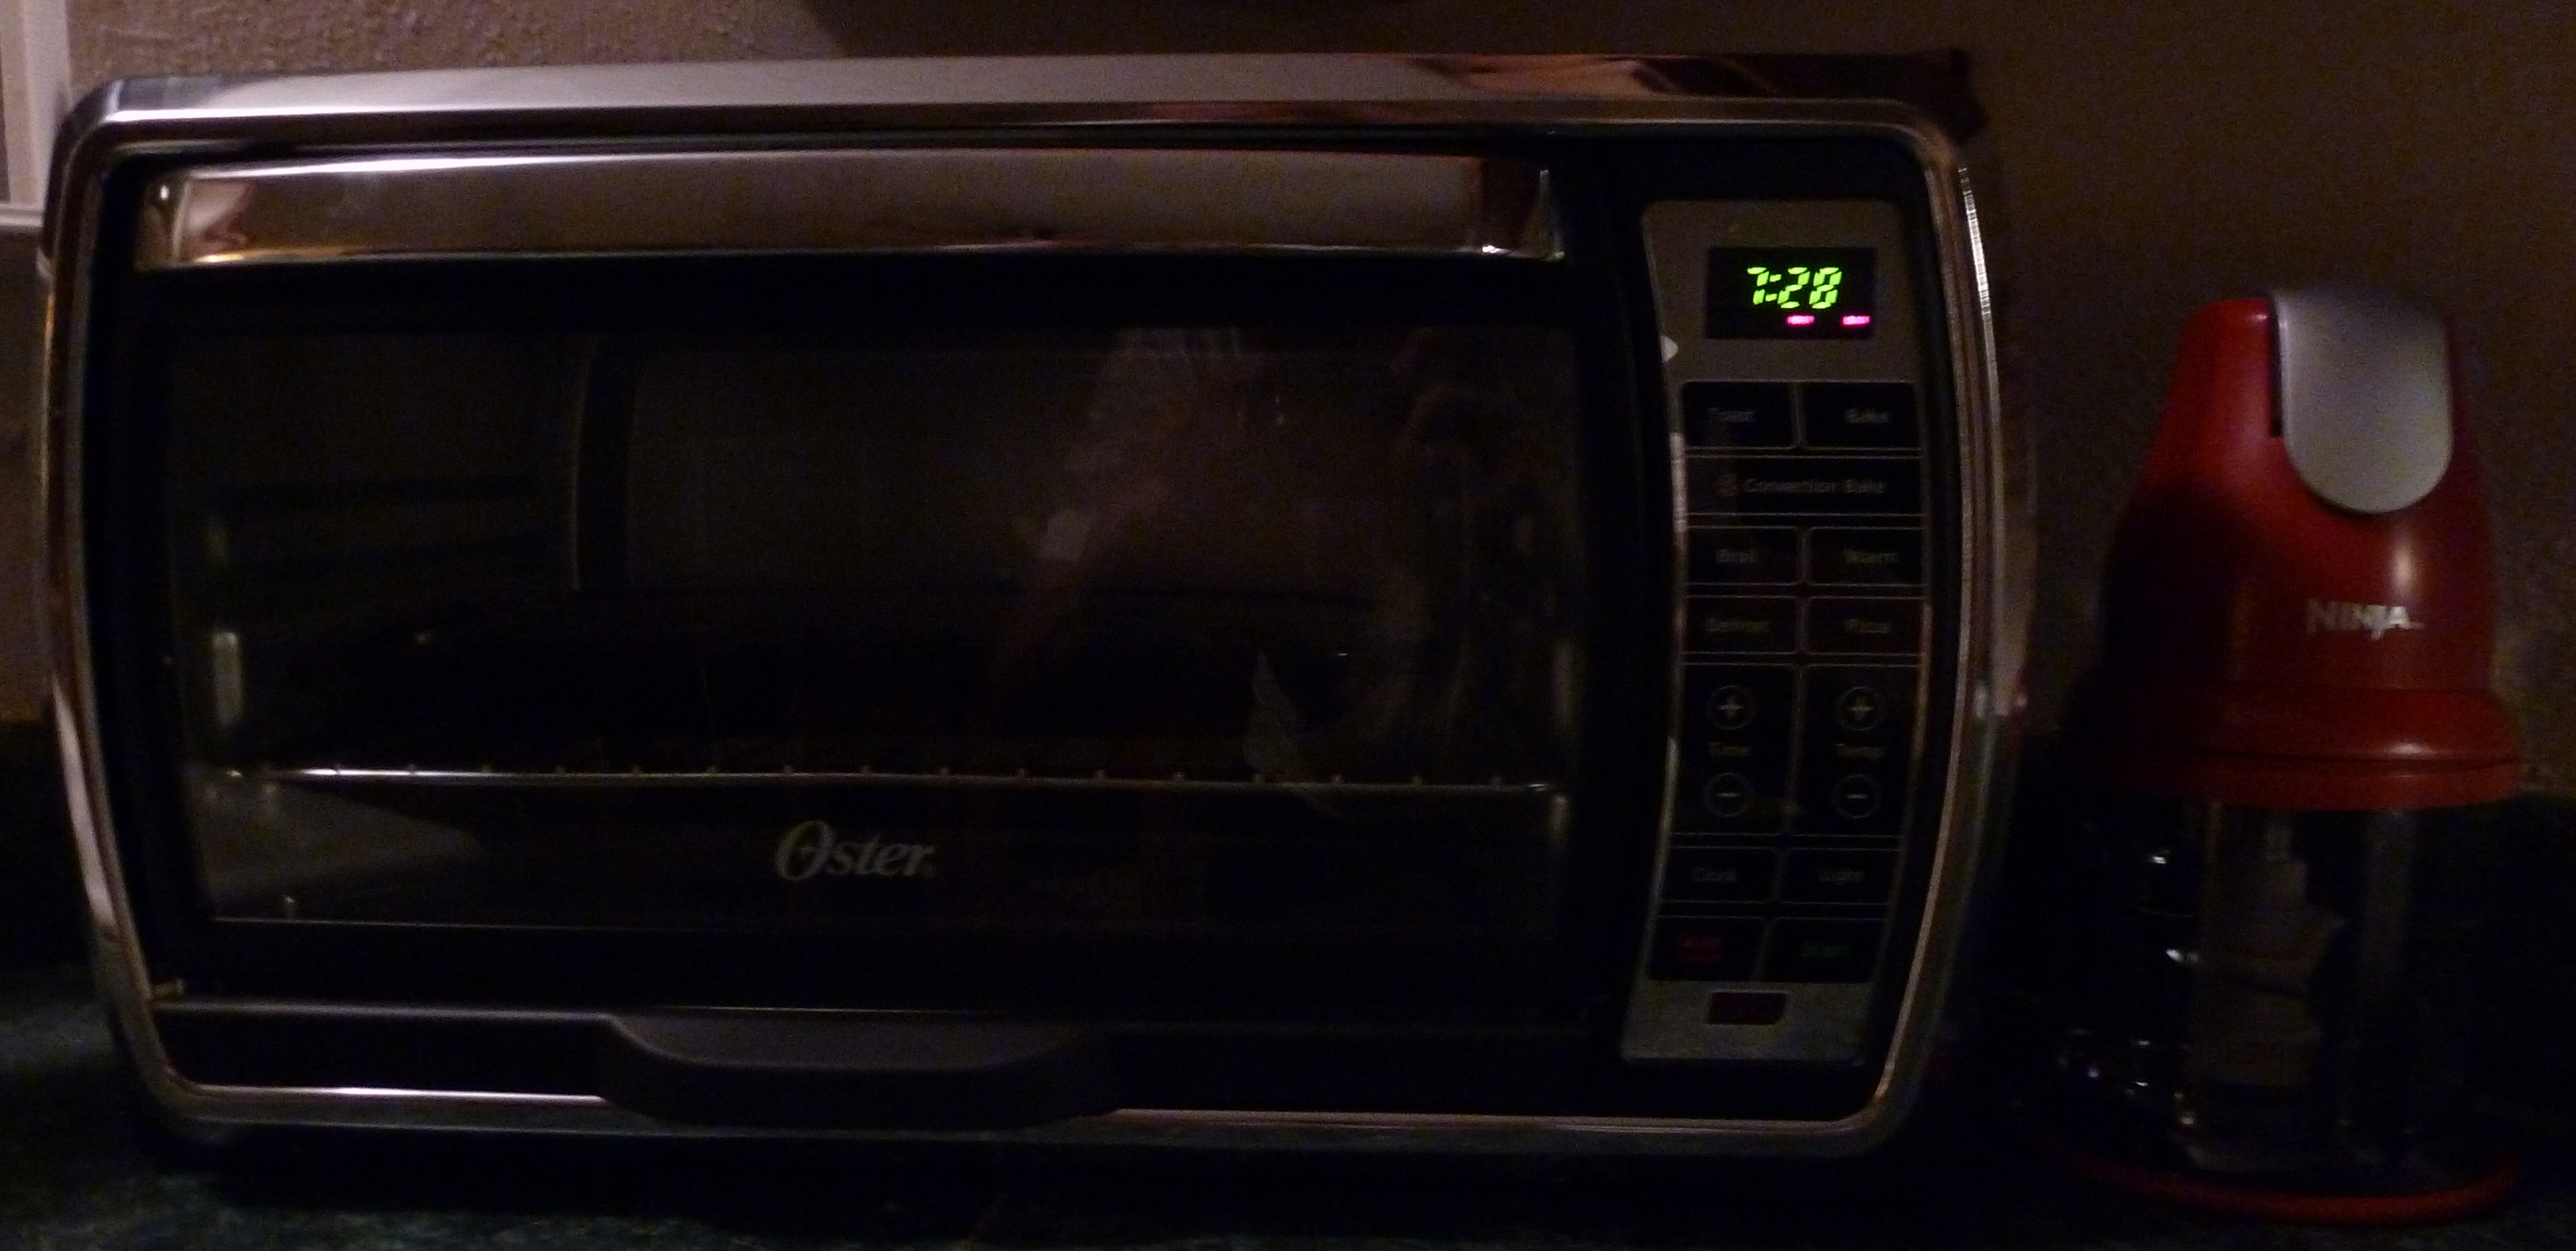 Ninja Countertop Oven : How well this oven works will be the subject of a future review, as ...